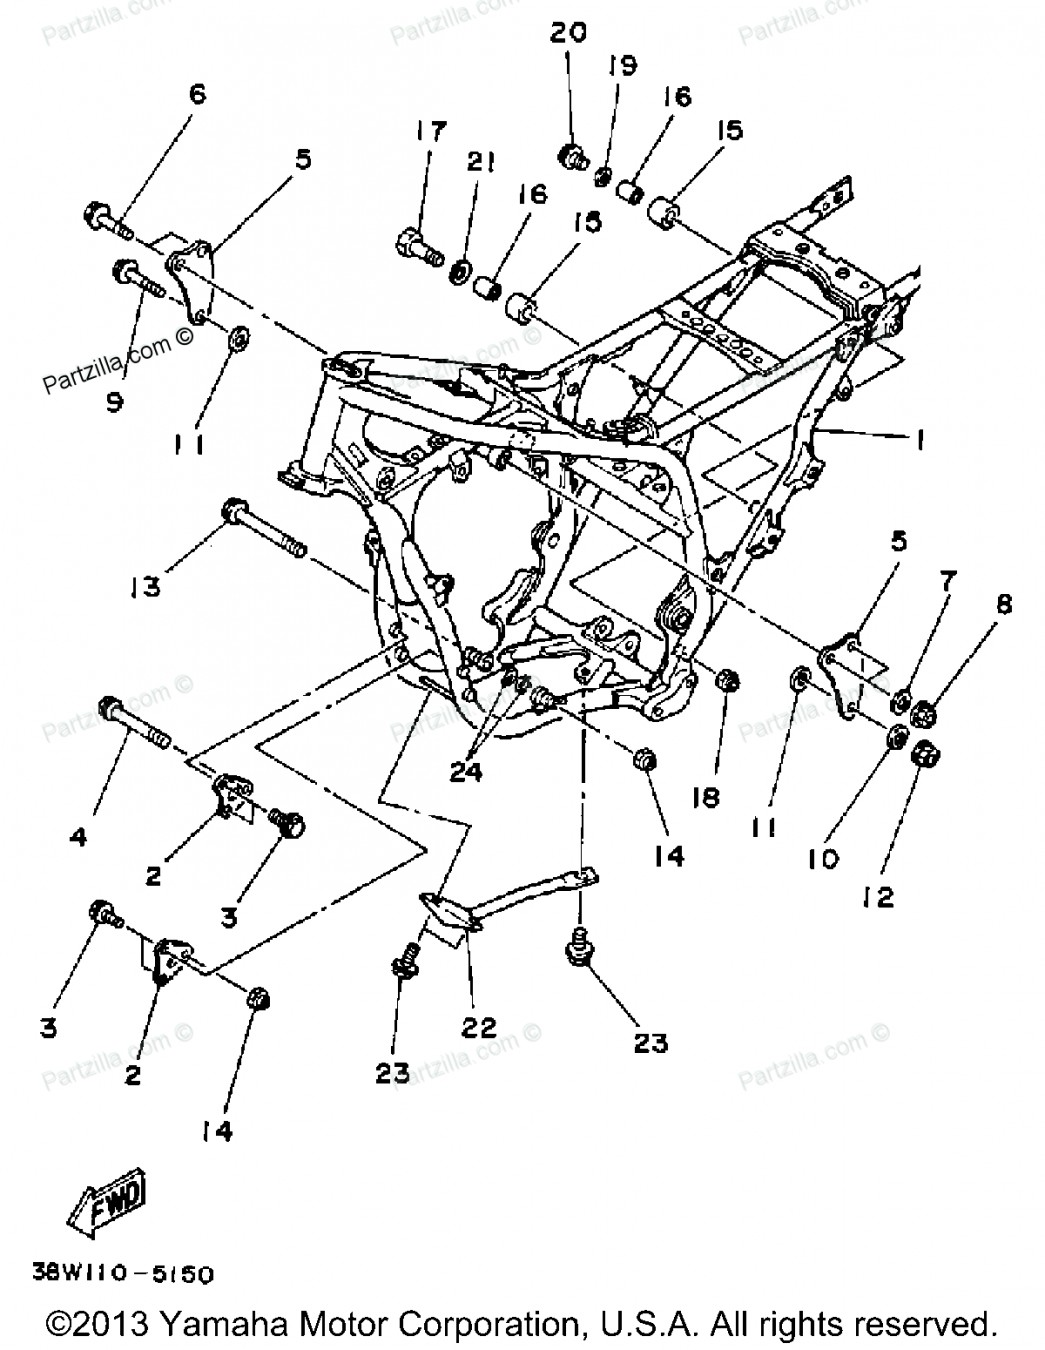 Lincoln 225 arc welder wiring diagram wiring diagram image lincoln 225 arc welder wiring diagram luxury fantastic welded wire mesh size chart elaboration